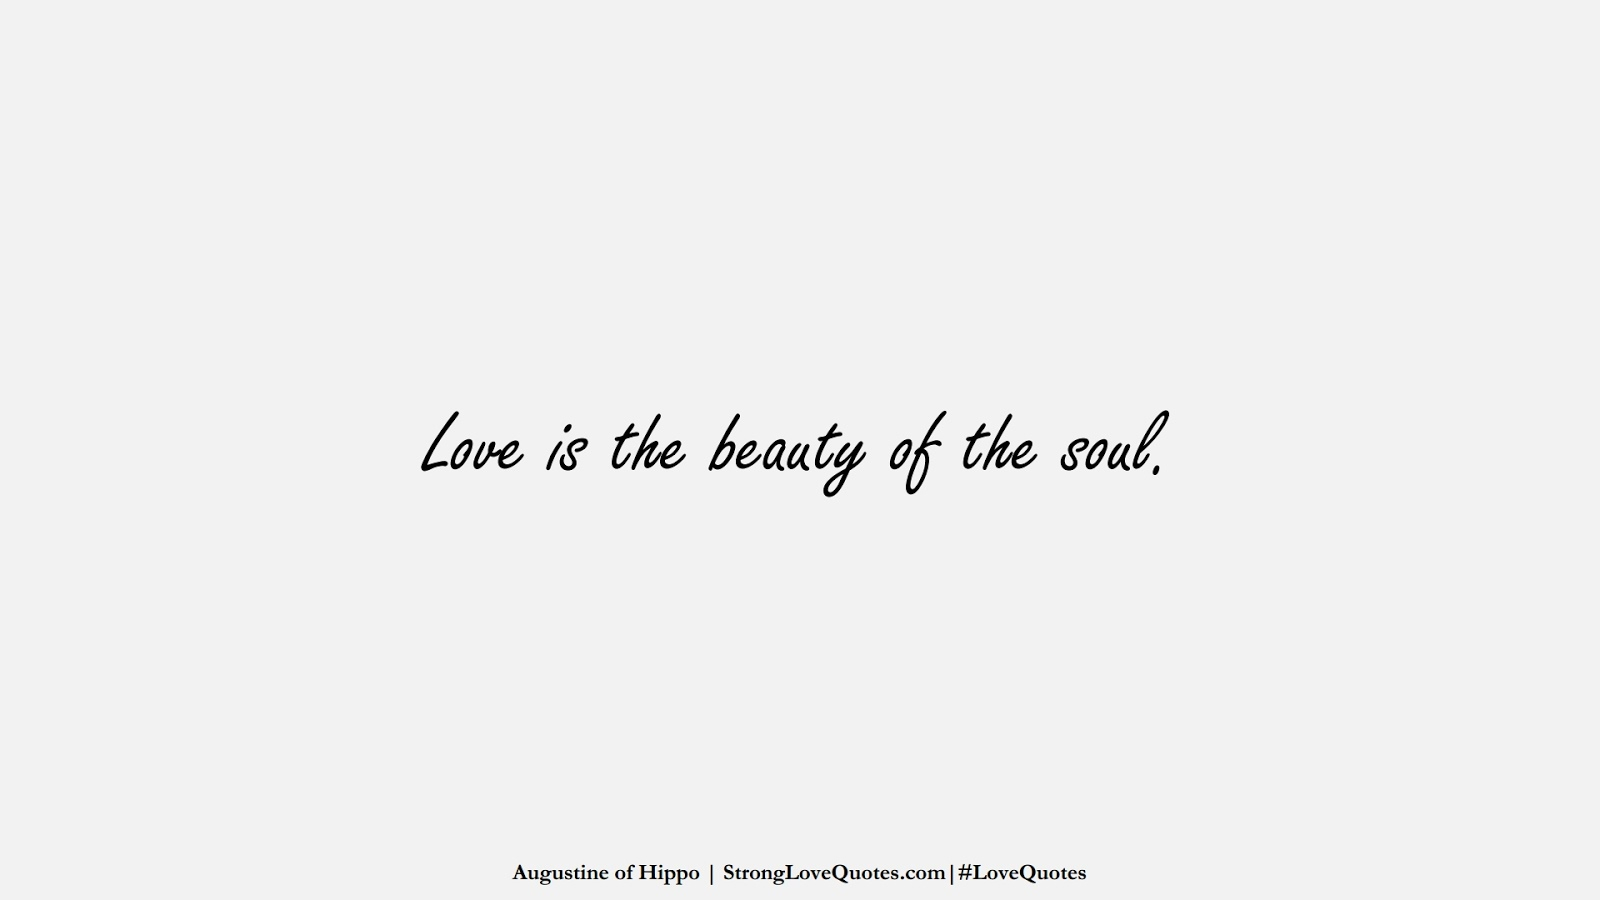 Love is the beauty of the soul. (Augustine of Hippo);  #LoveQuotes